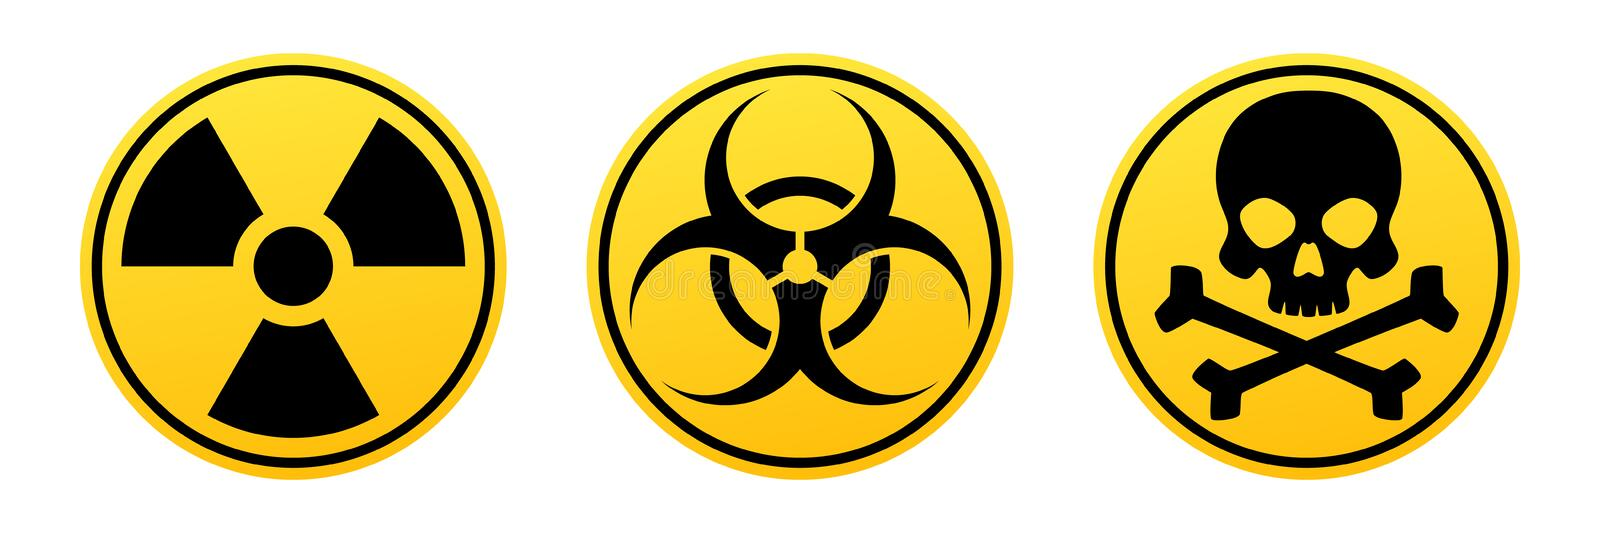 Danger yellow vector signs. Radiation sign, Biohazard sign, Toxic sign. royalty free illustration